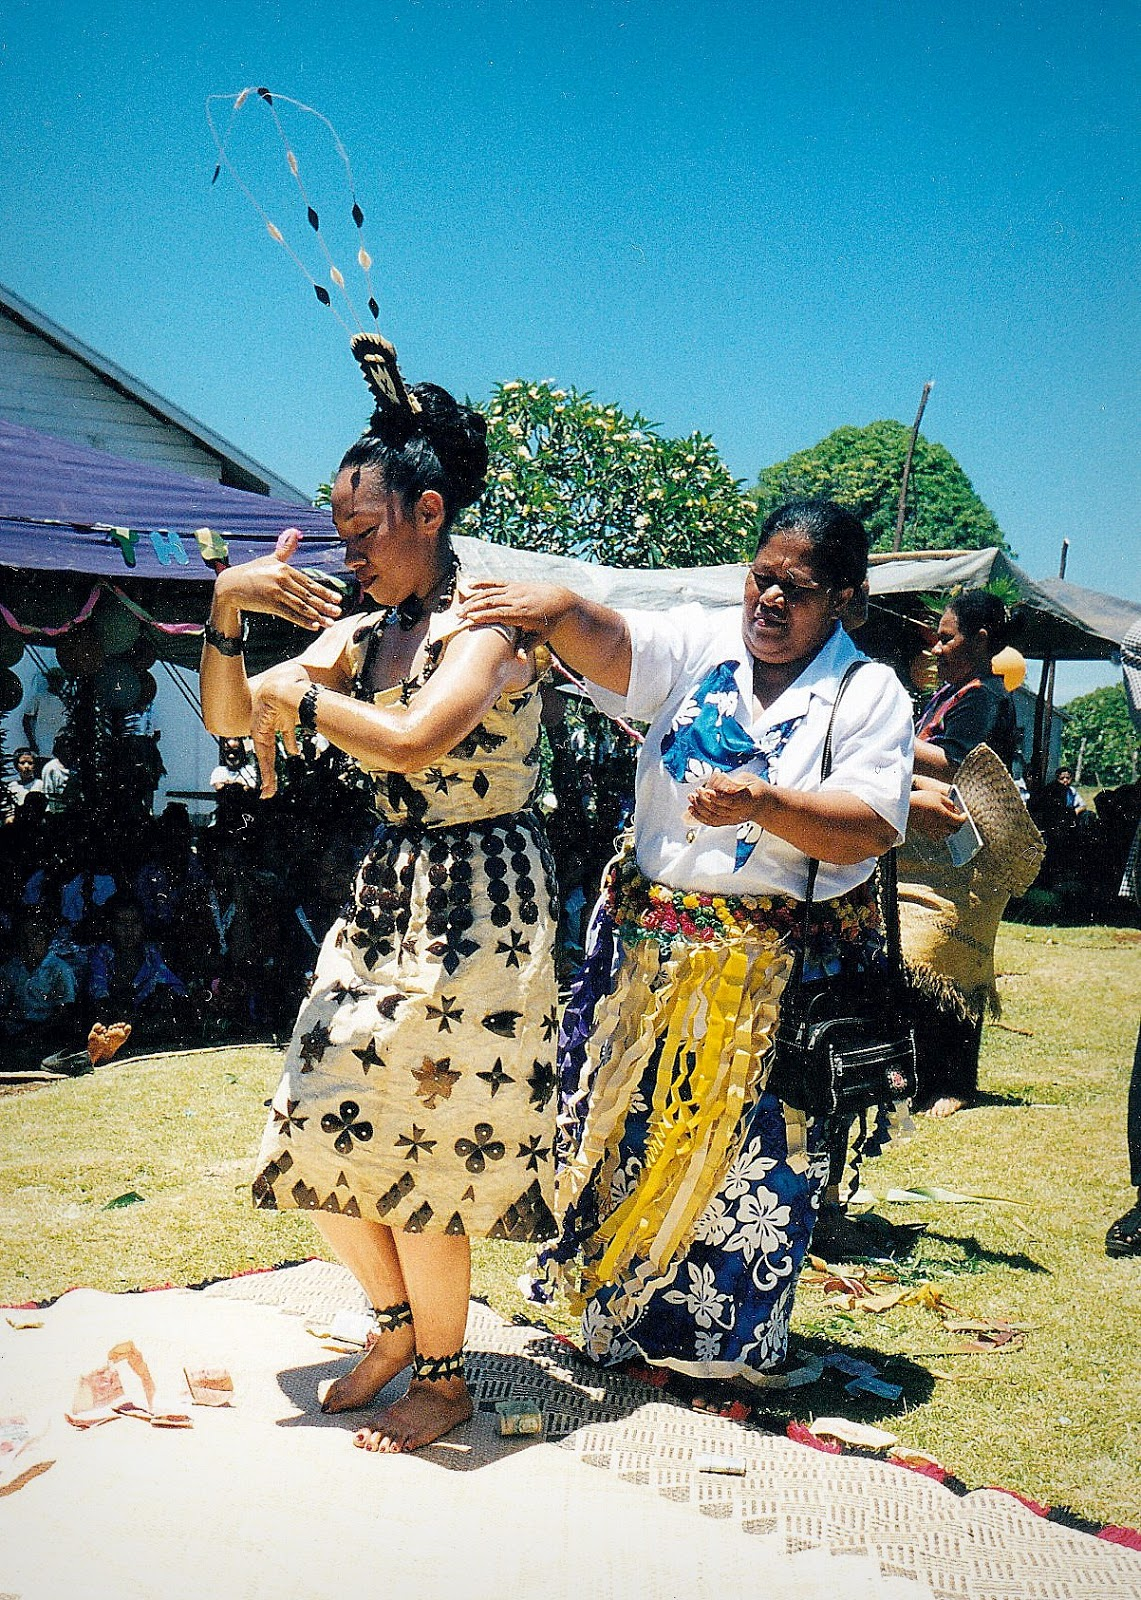 Tonga, where I visited in 1999 as a wide-eyed medical student; its culture so different to my own.